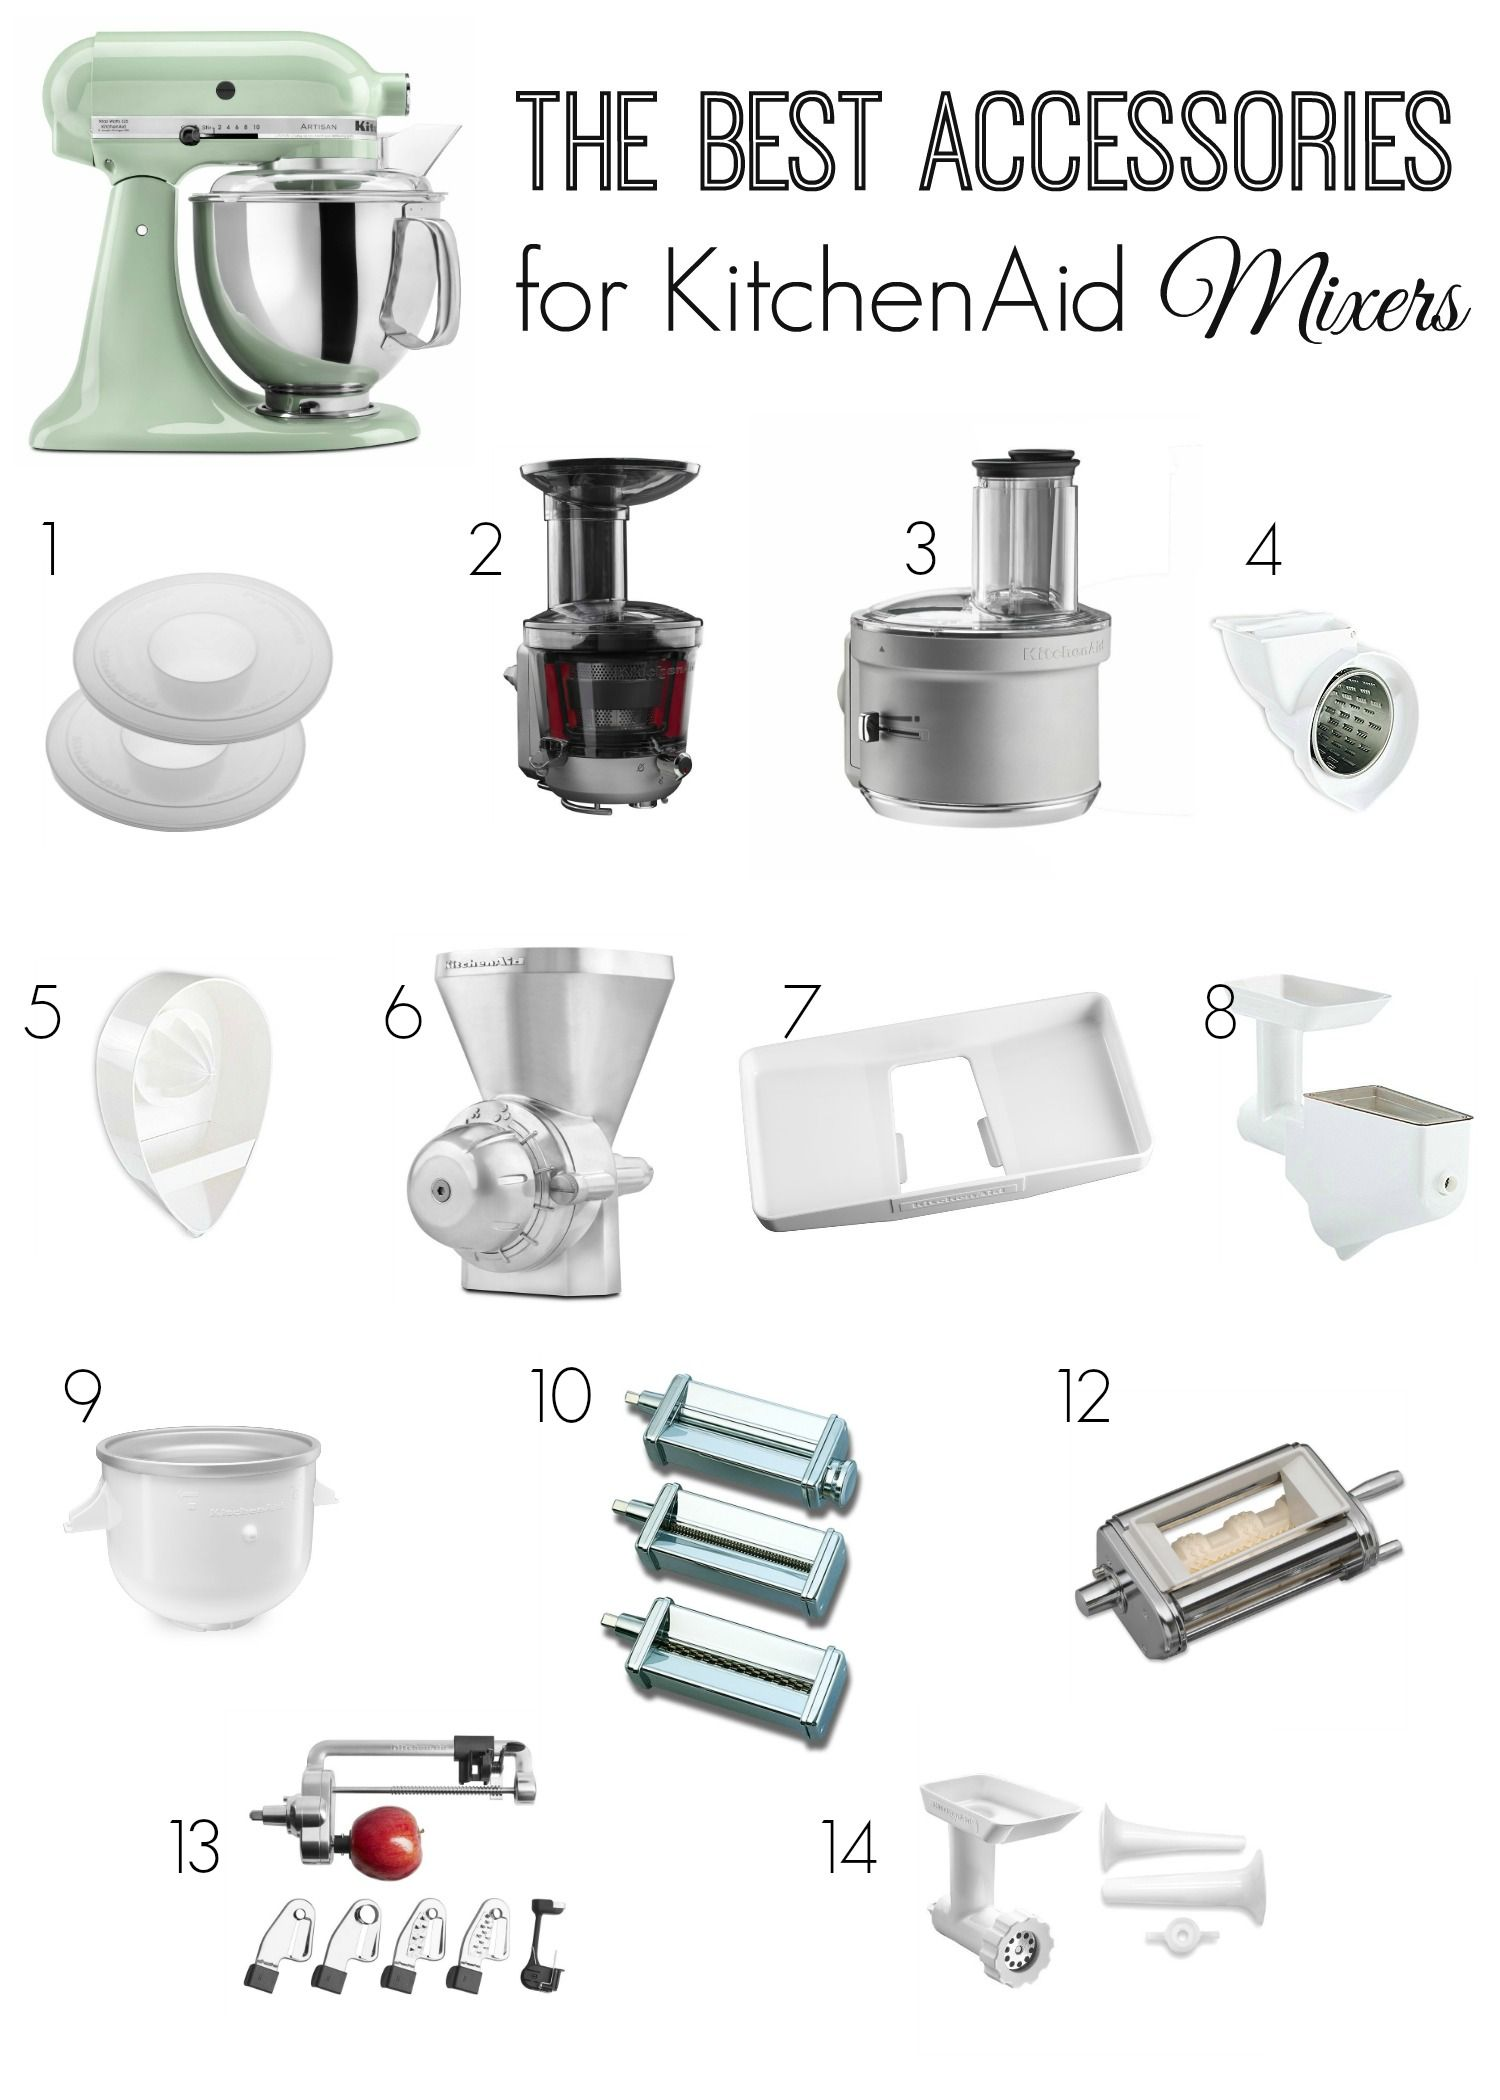 If You Have A KitchenAid Stand Mixer Youll Love This